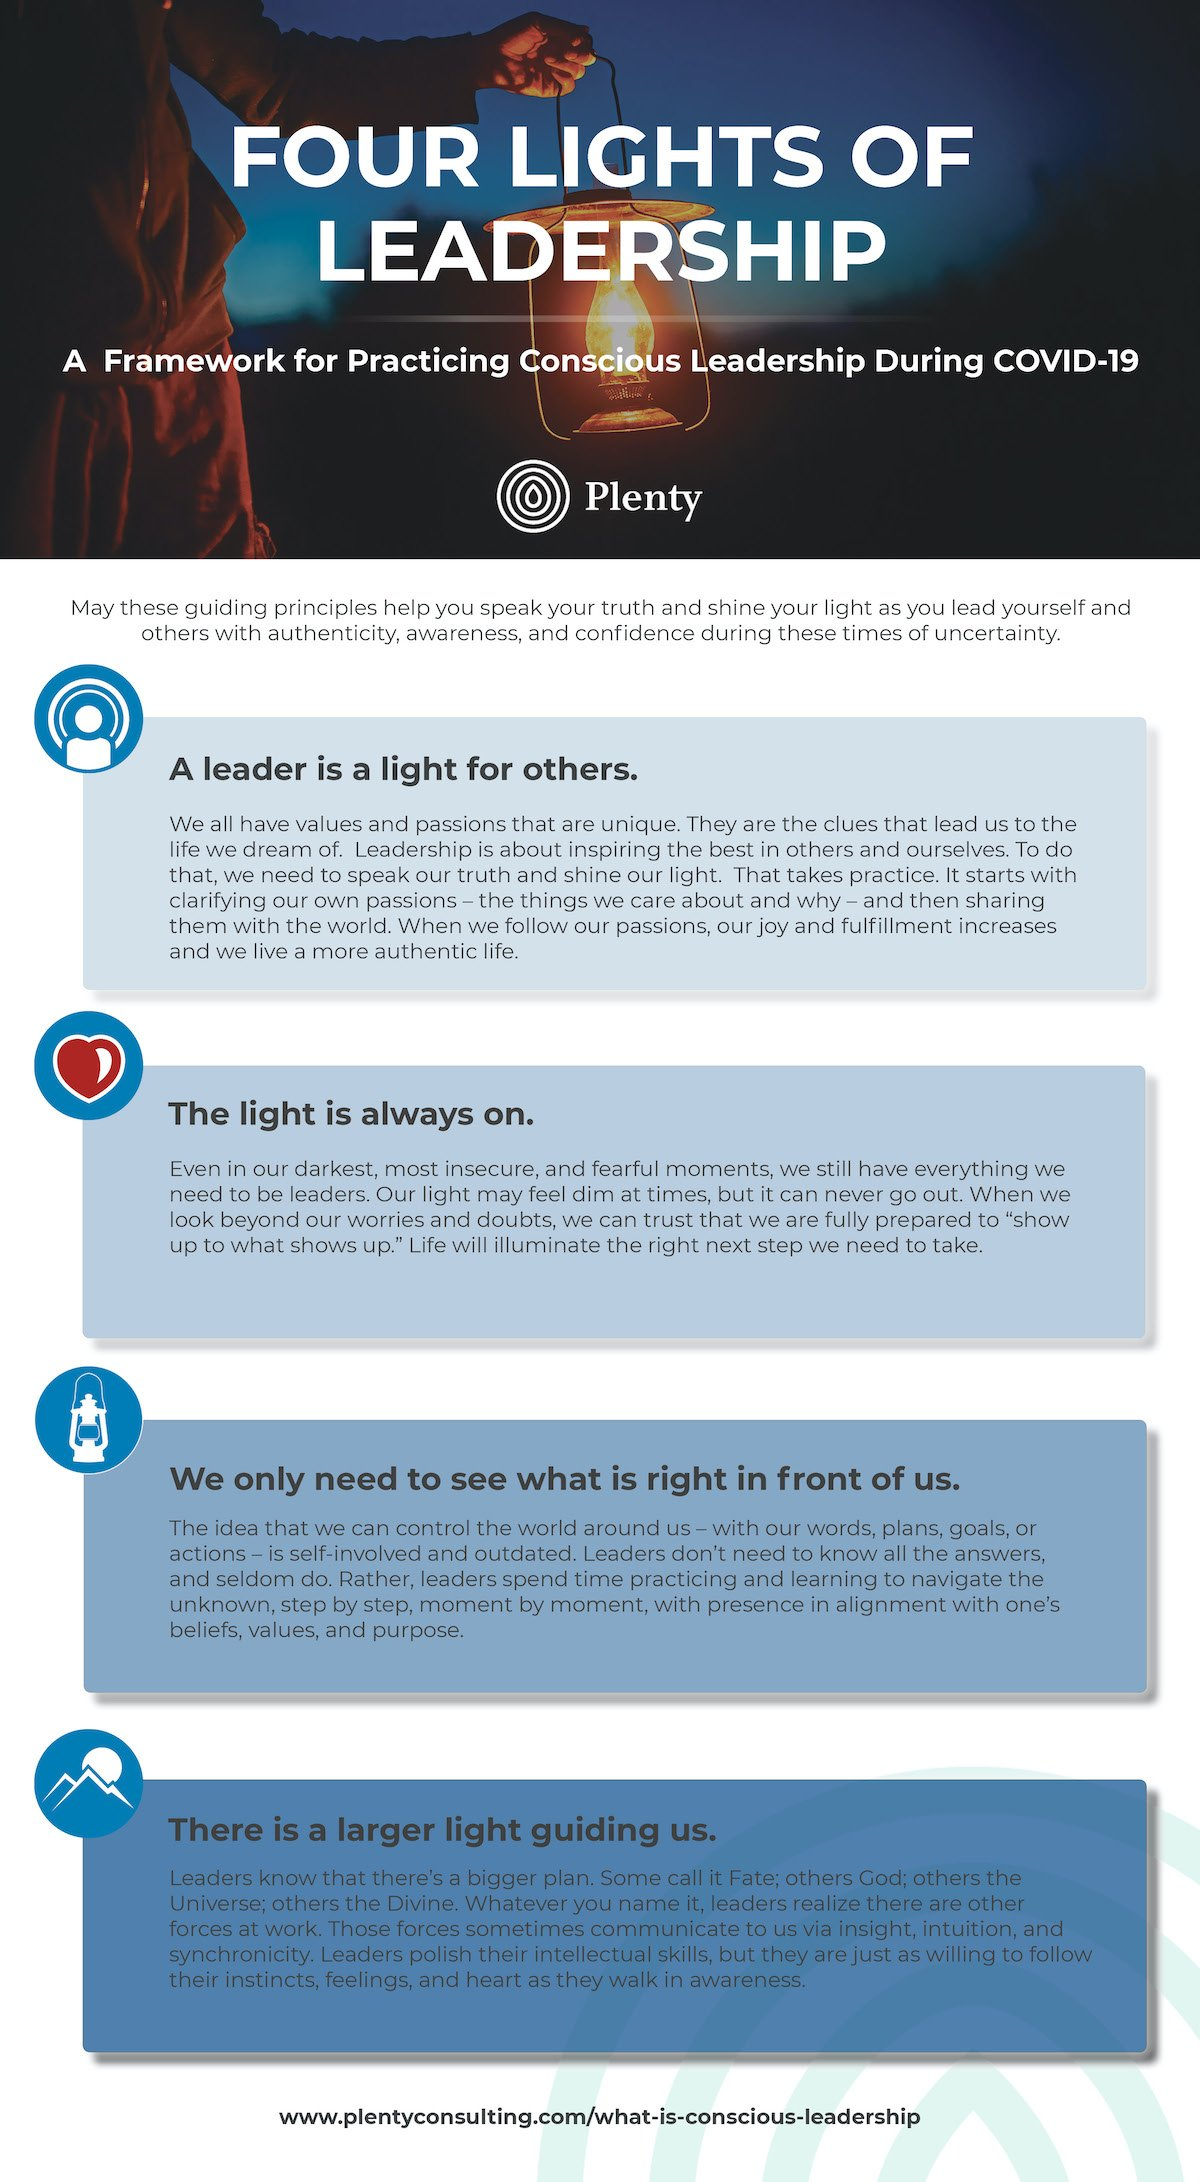 Four Lights of Leadership Infographic